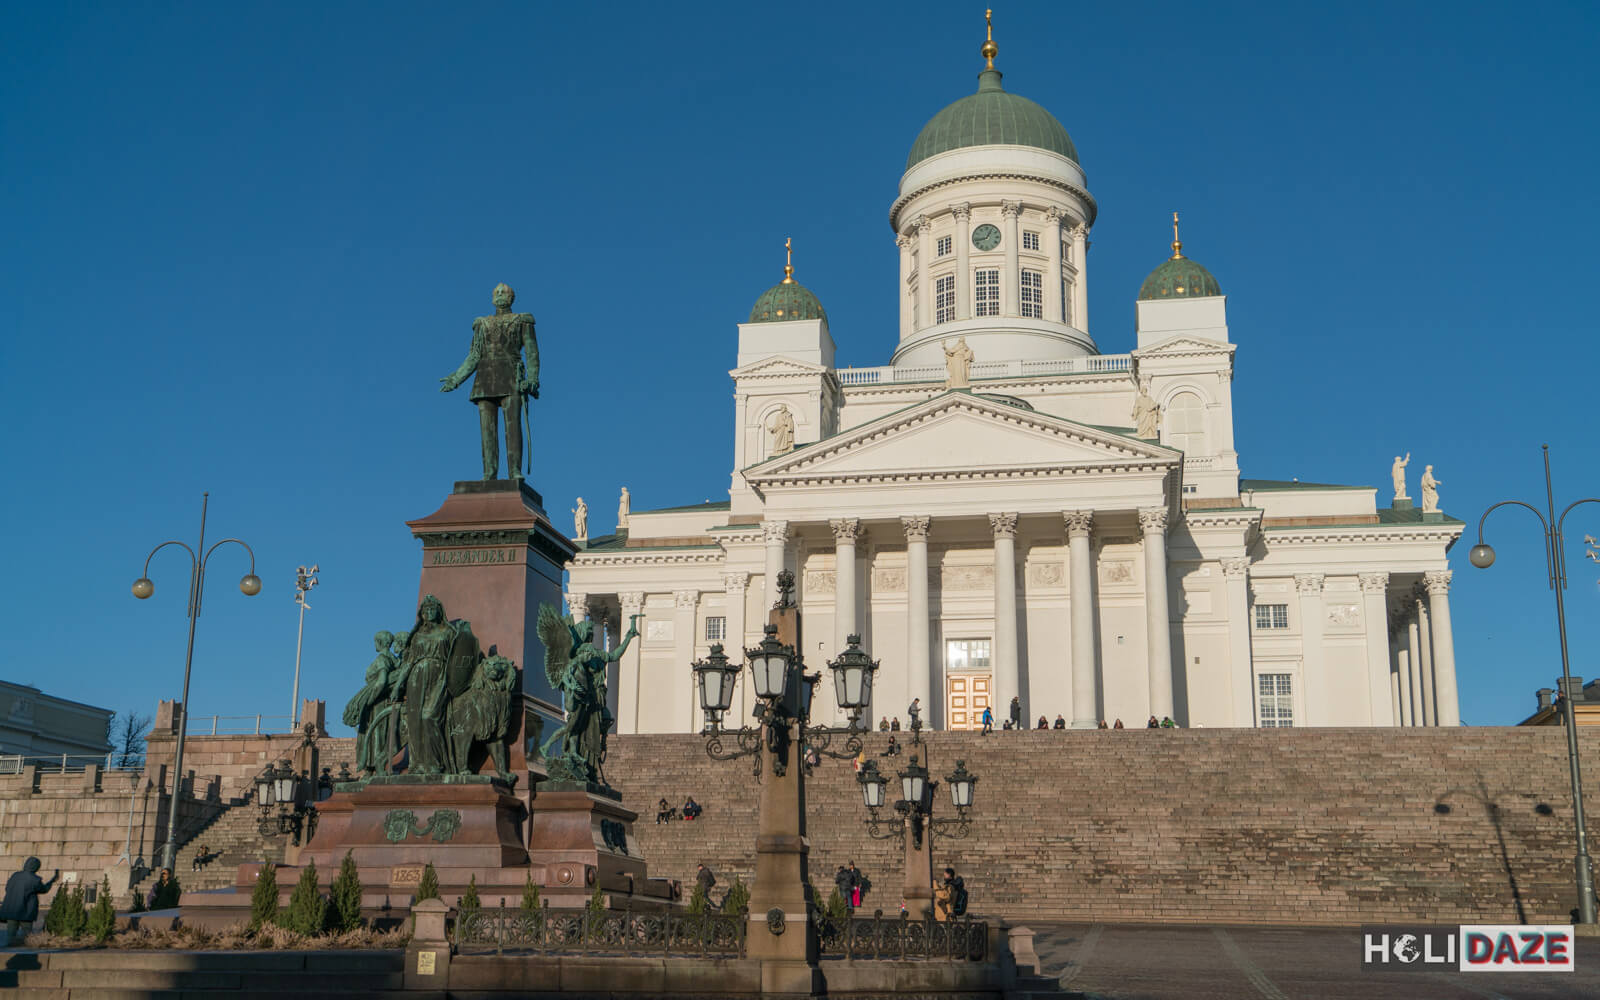 Senate Square in Helsinki and a great view of the White Cathedral and the statue of Alexander II